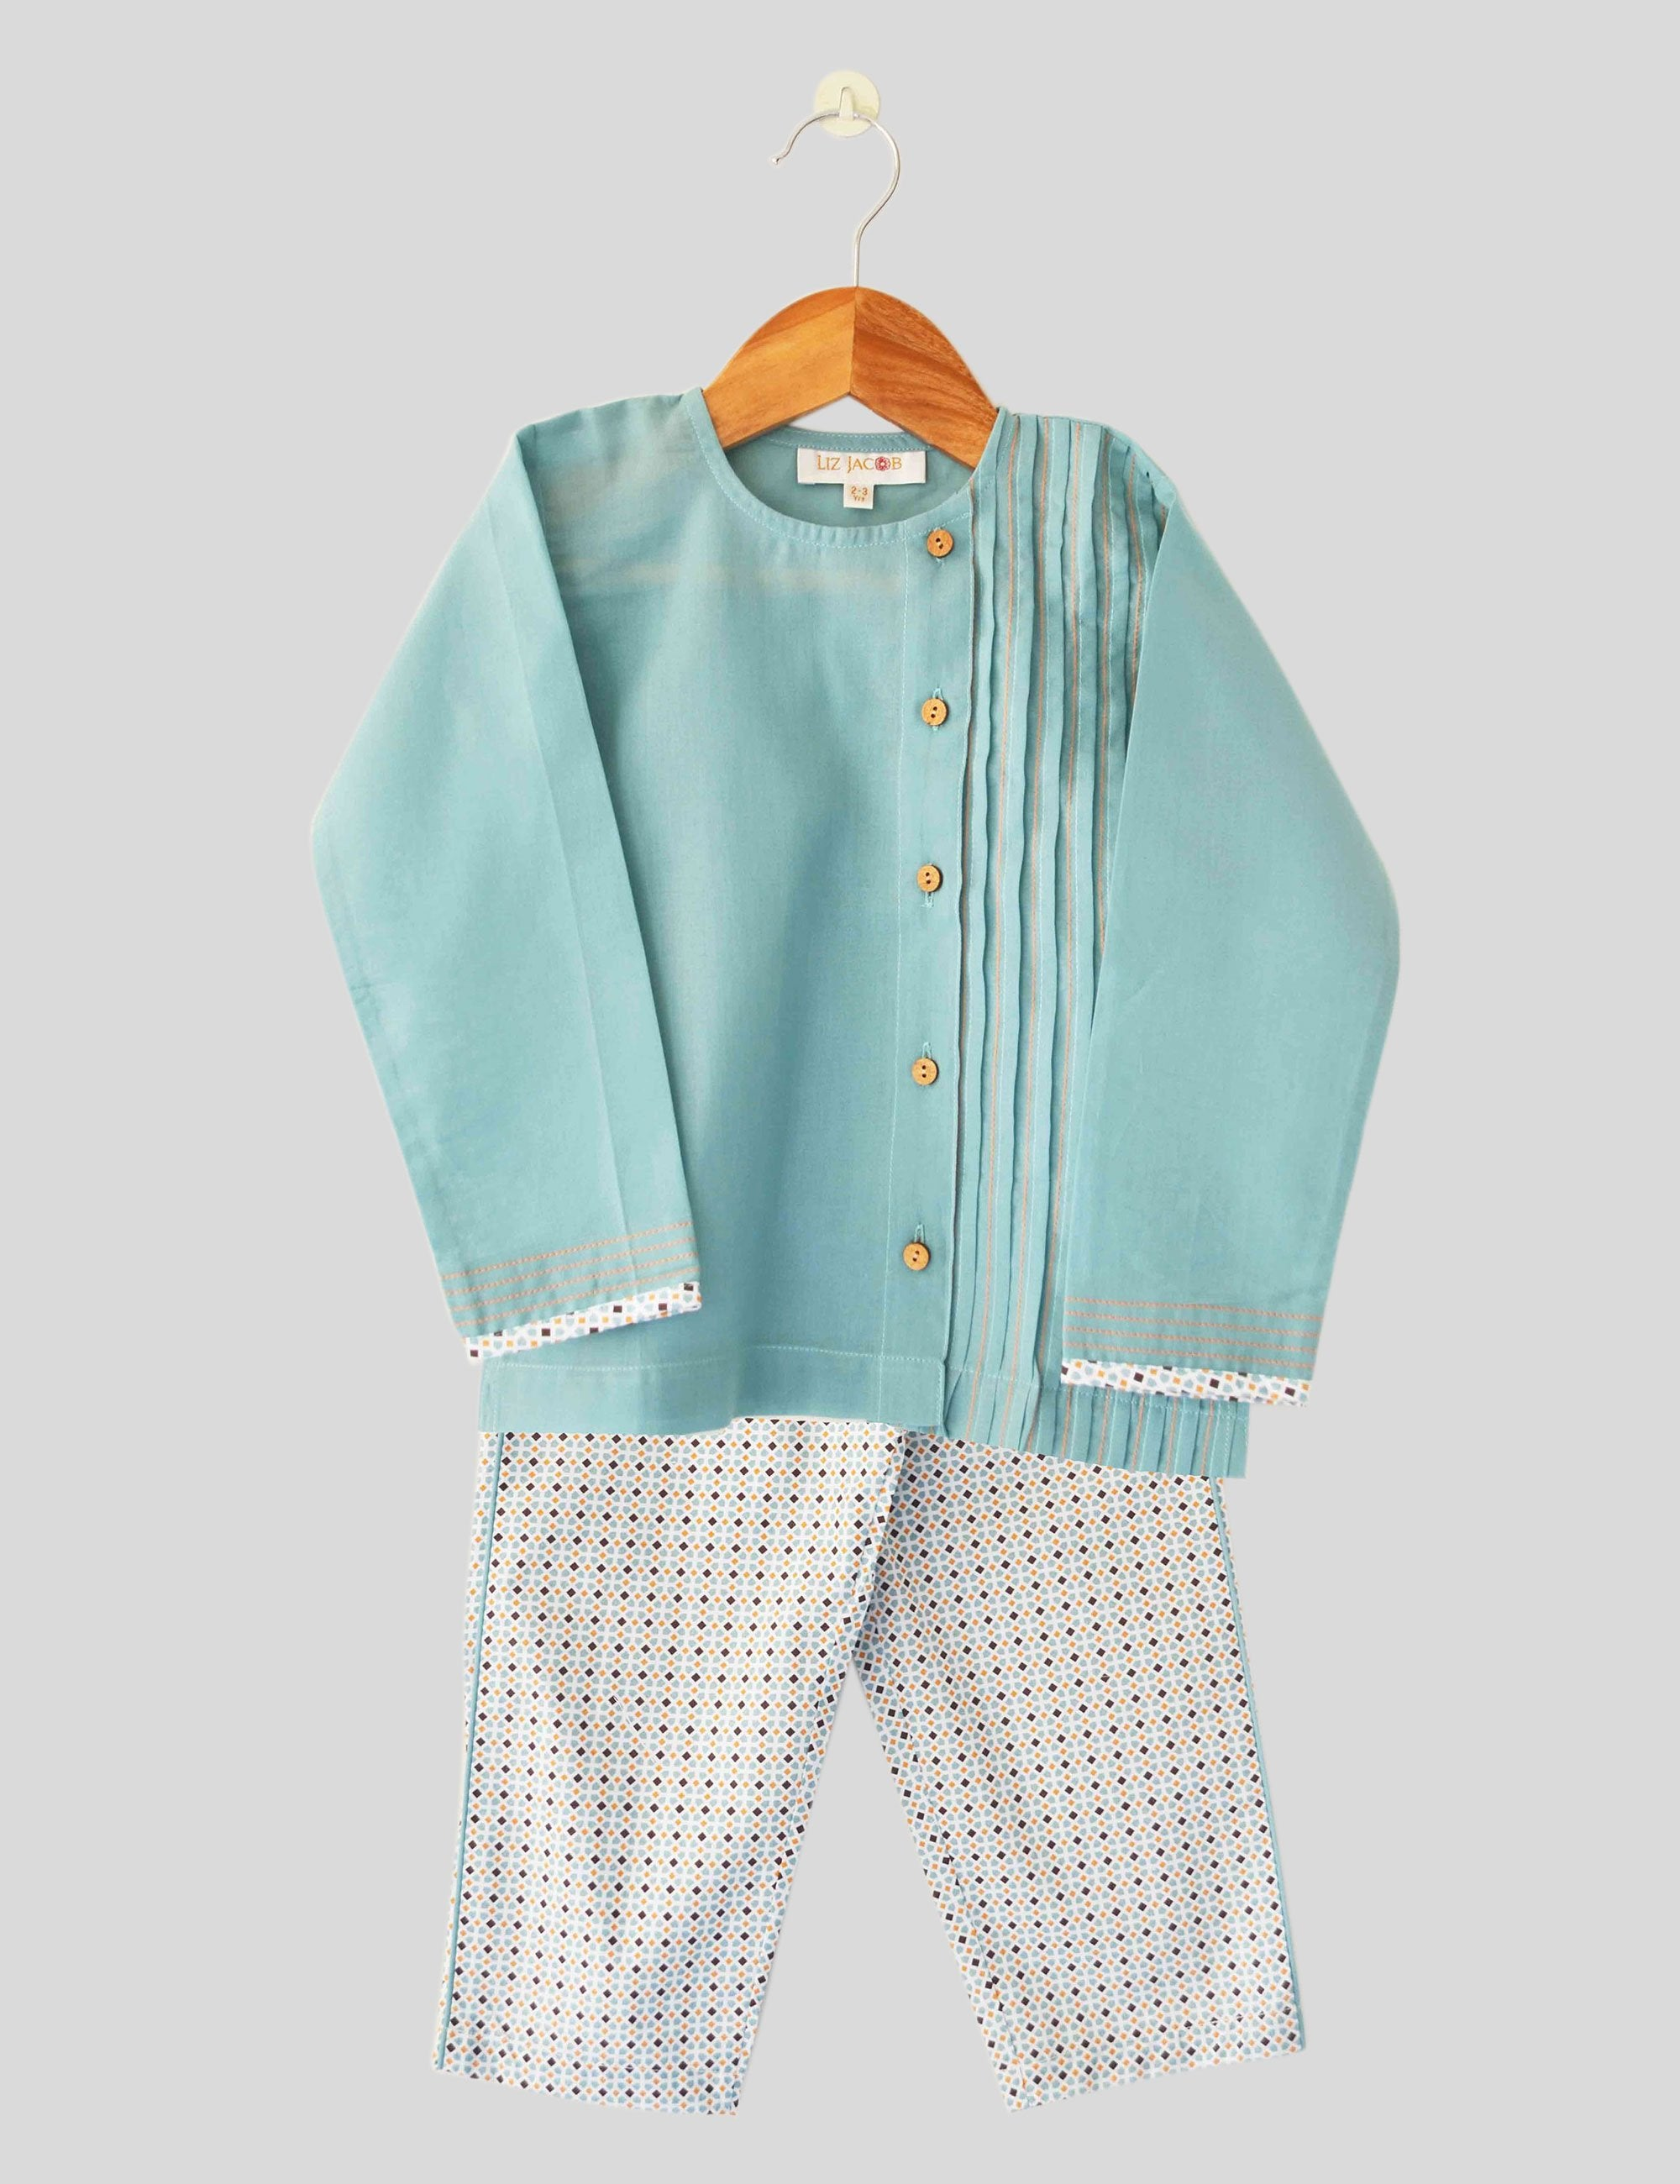 Kaleidoscope Pajama Set in Green and White Colour for Girls